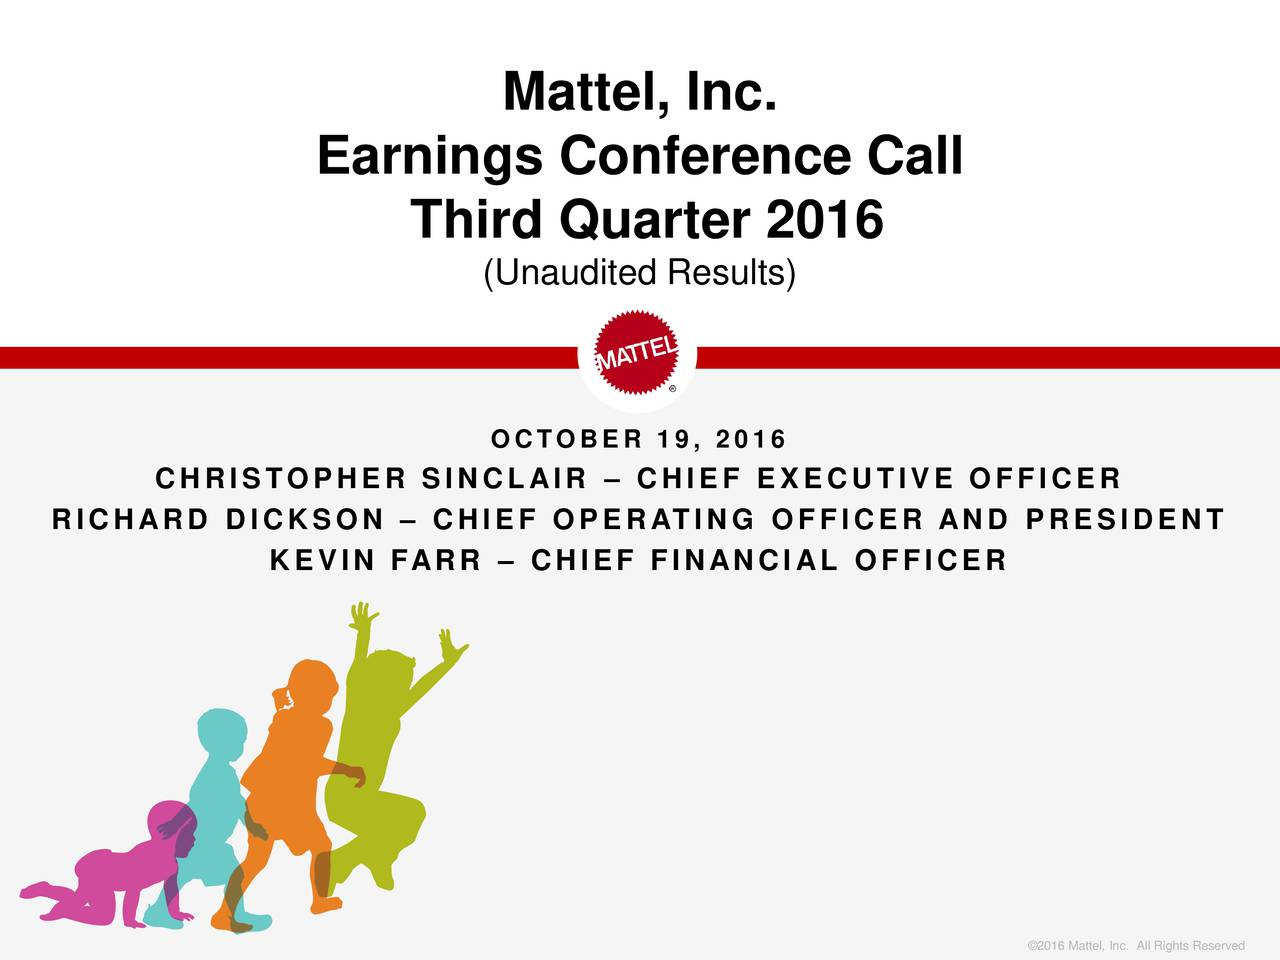 Earnings Conference Call Third Quarter 2016 (Unaudited Results) OCTOBER 19, 2016 CHRISTOPHER SINCLAIR  CHIEF EXECUTIVE OFFICER RICHARD DICKSON  CHIEF OPERATING OFFICER AND PRESIDENT KEVIN FARR  CHIEF FINANCIAL OFFICER